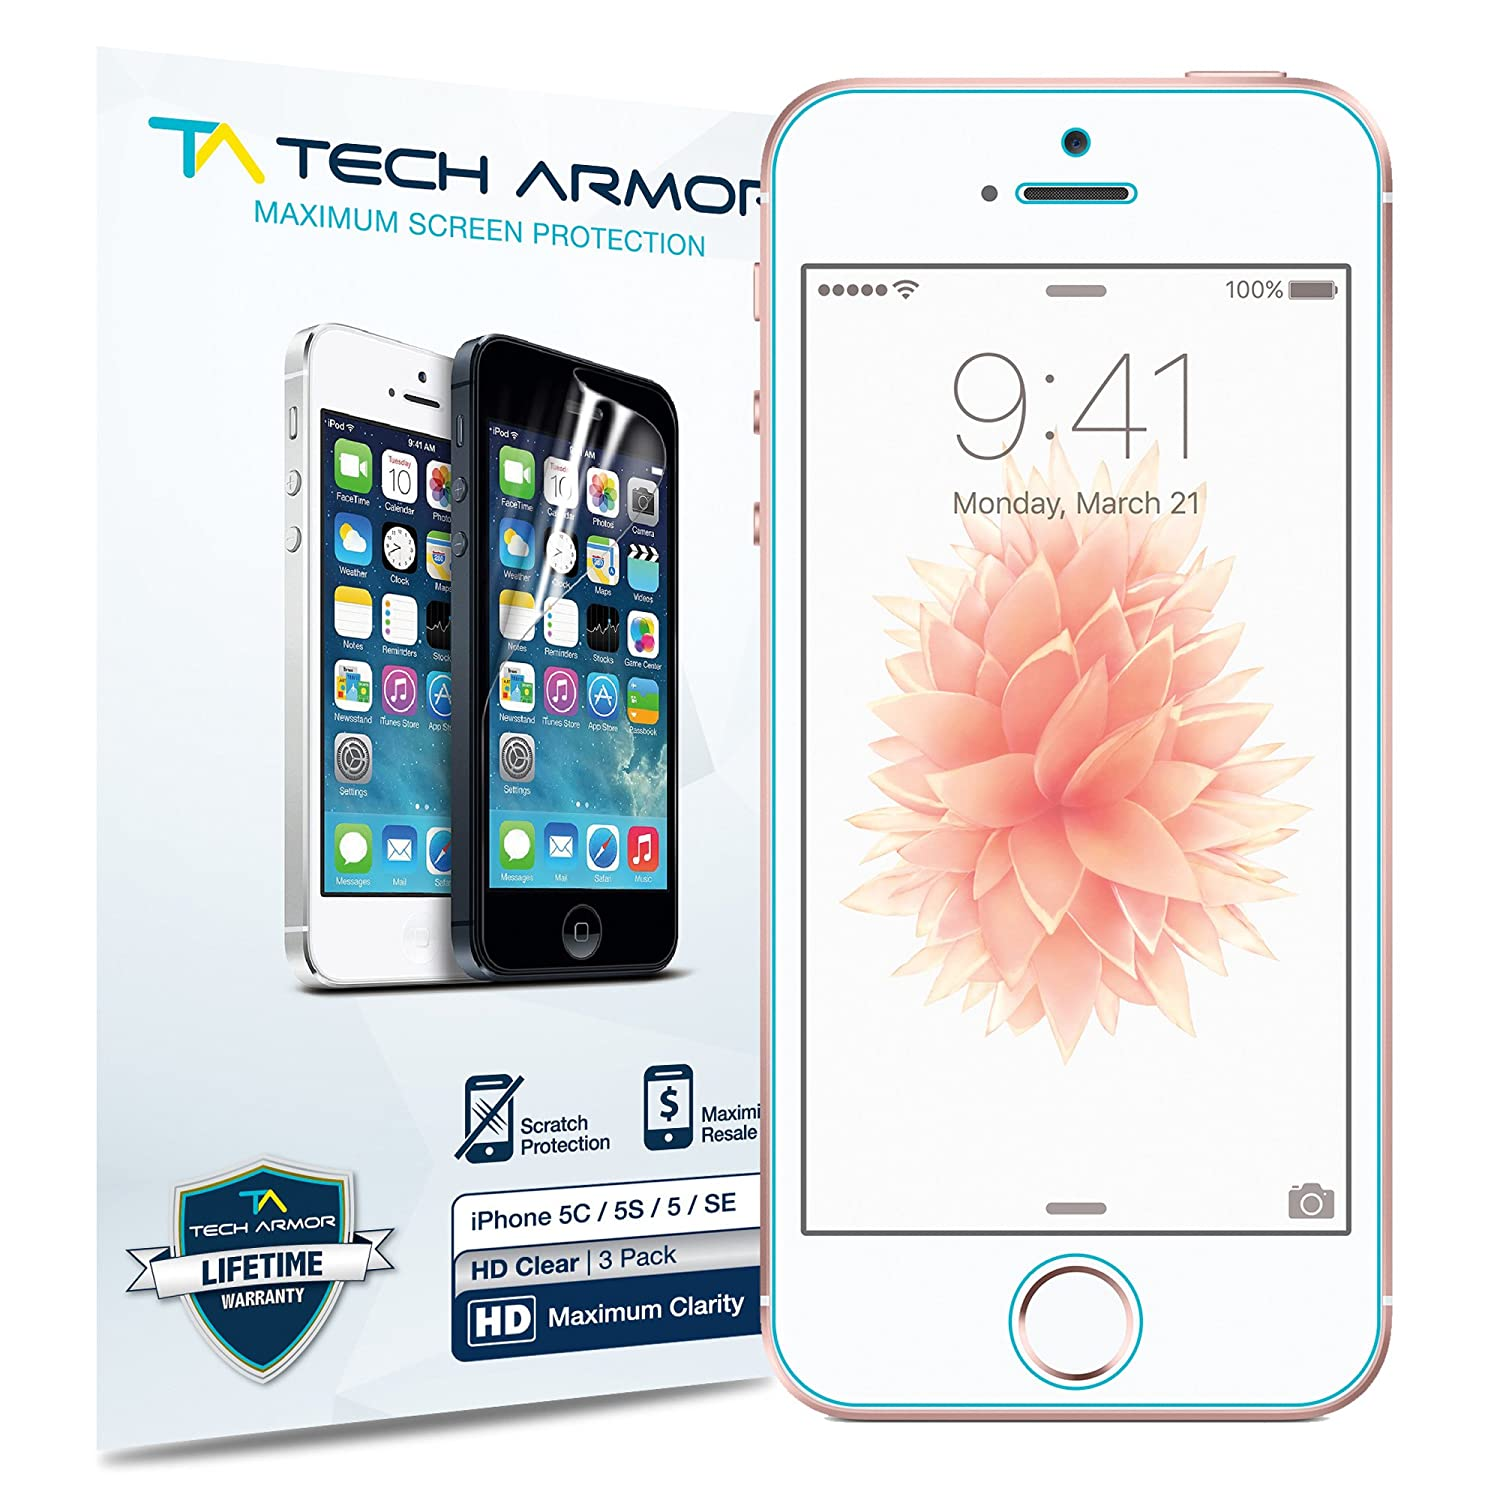 Tech Armor High Definition Clear Screen Protector for iPhone 5/5C/5S/SE (Pack of 3) FBA_SP-HD-APL-IP5-3